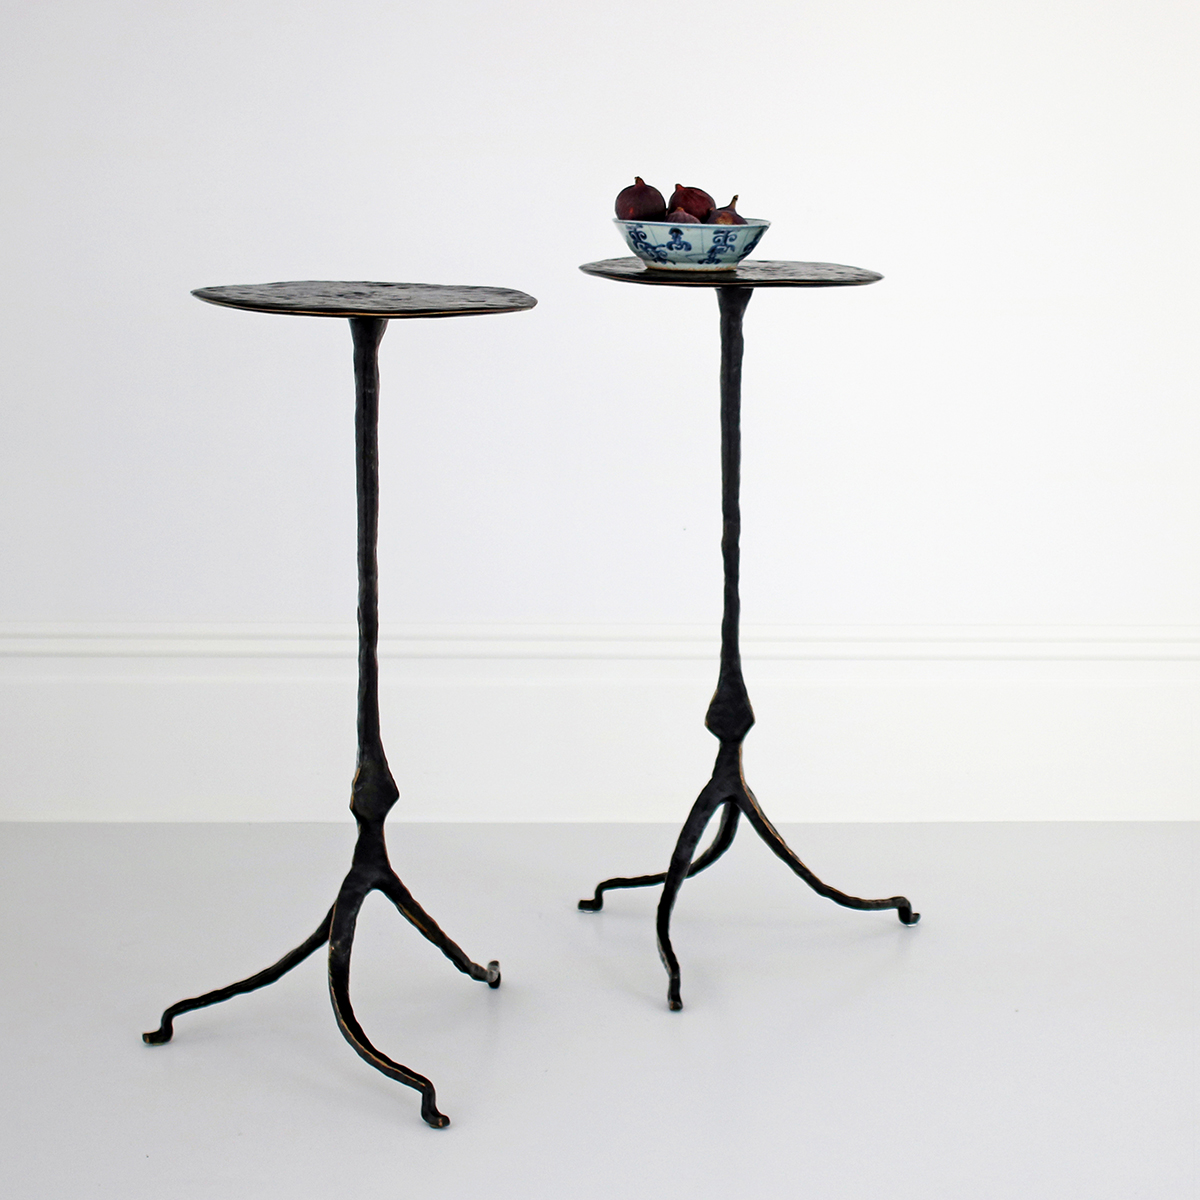 BRONZE SIDE TABLES £1,950